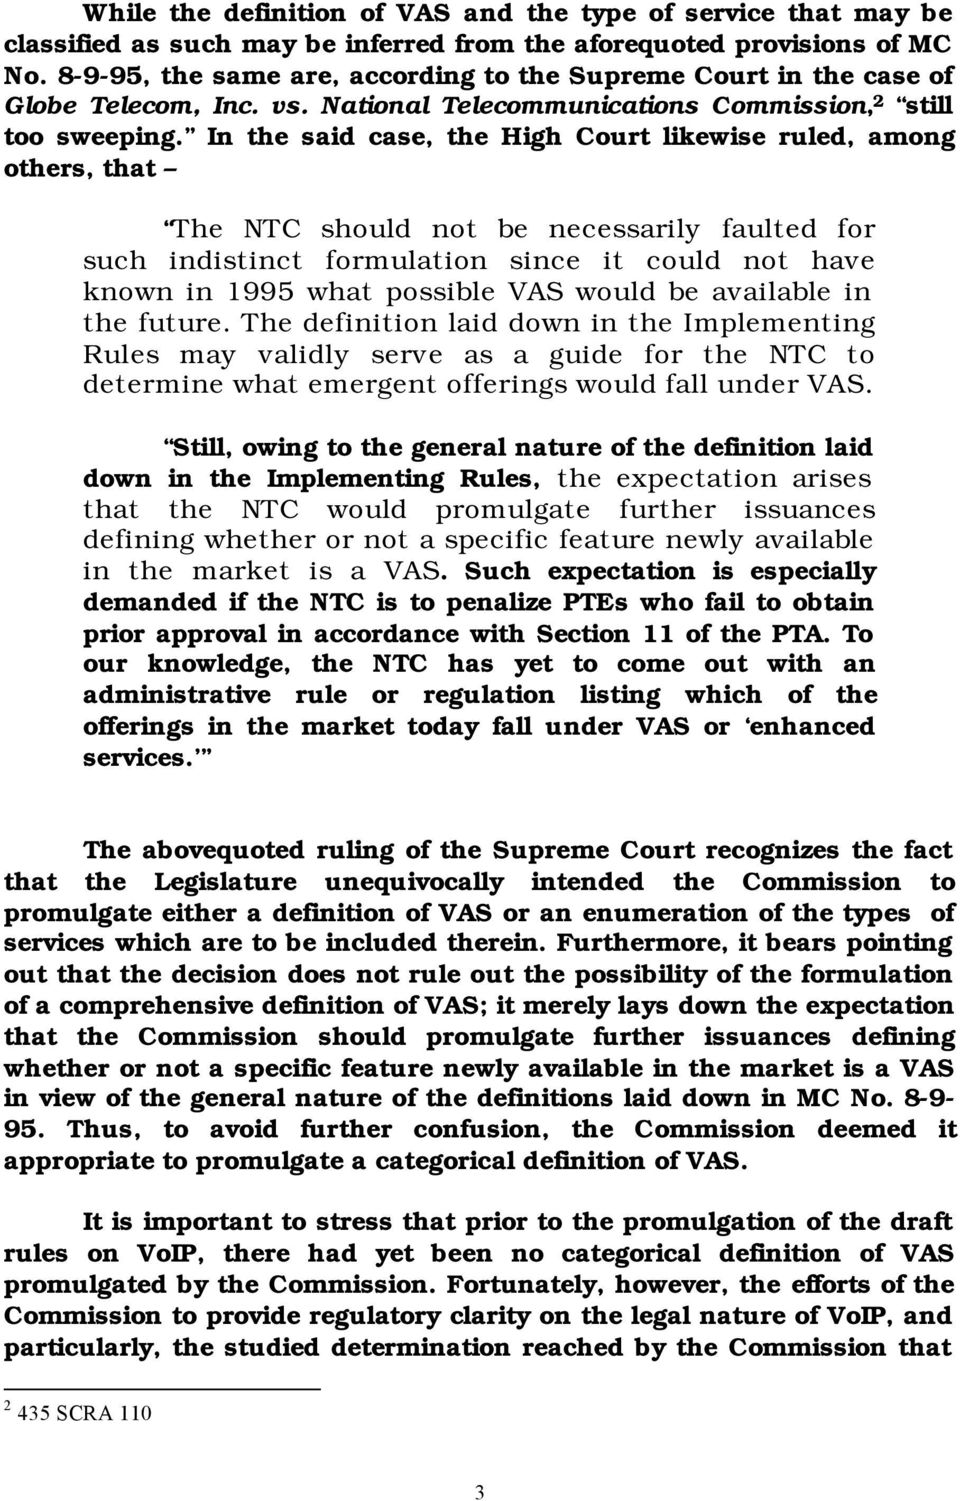 In the said case, the High Court likewise ruled, among others, that The NTC should not be necessarily faulted for such indistinct formulation since it could not have known in 1995 what possible VAS